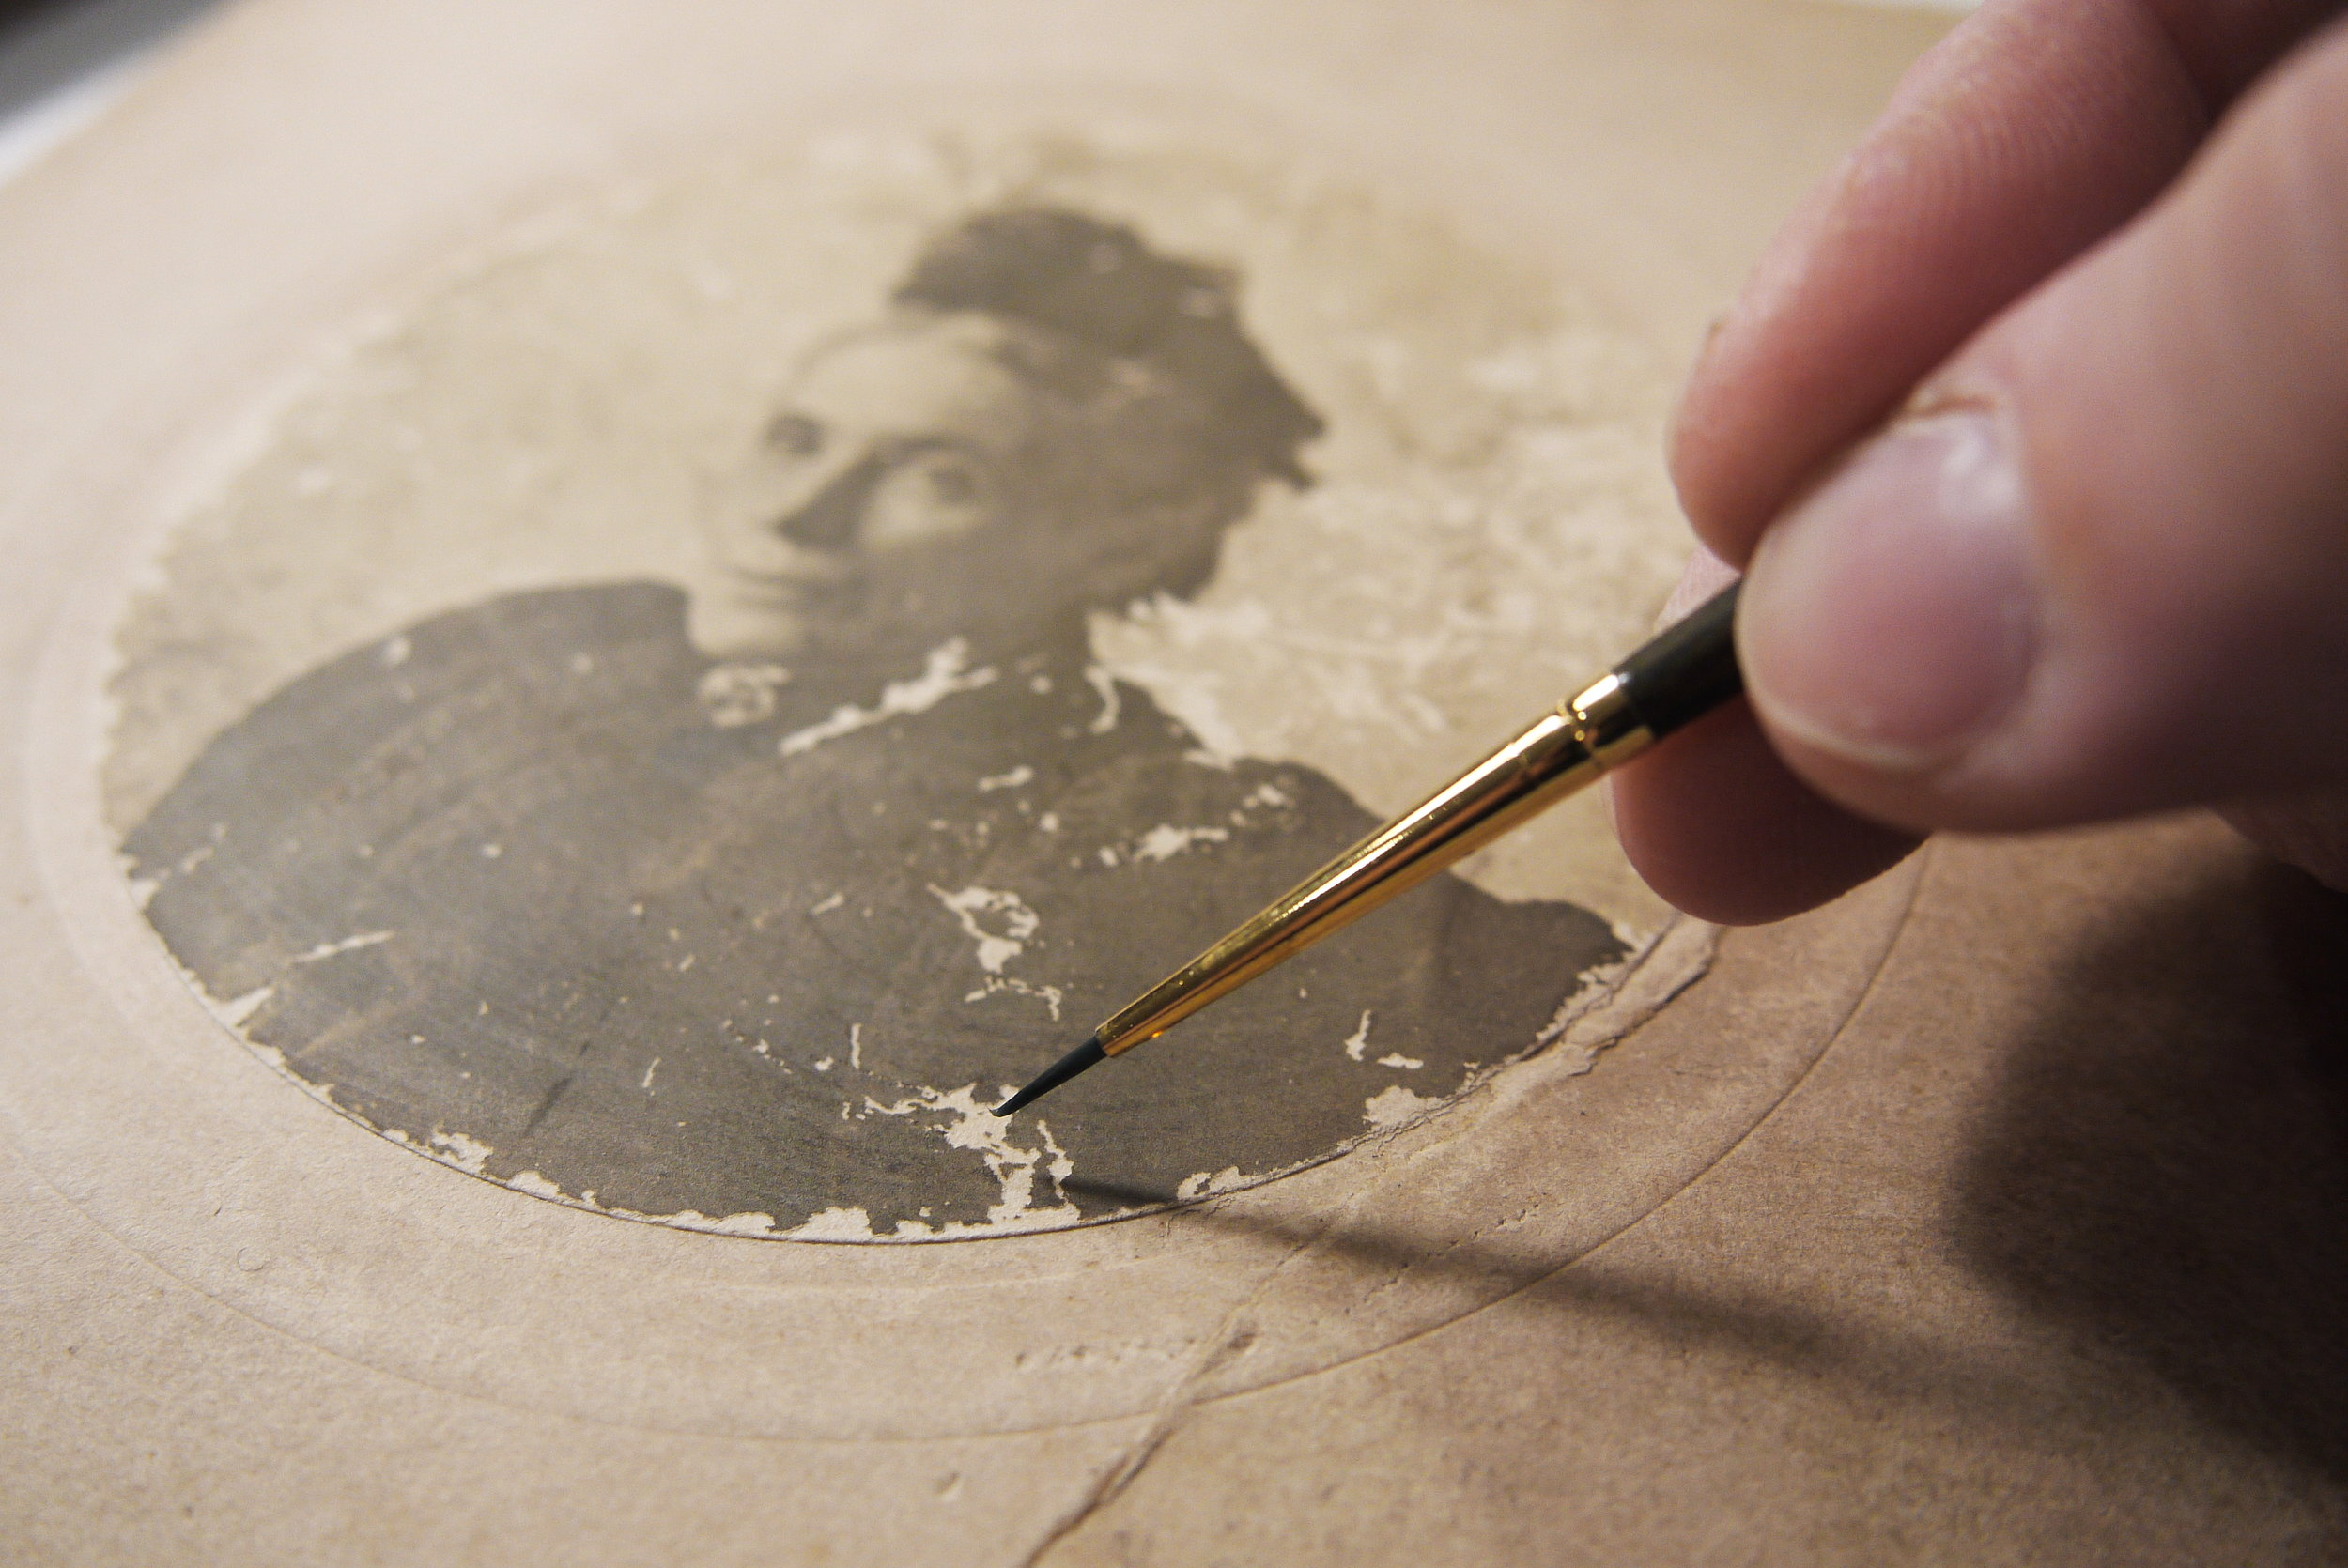 Applying watercolour to the lost emulsion of the photograph.